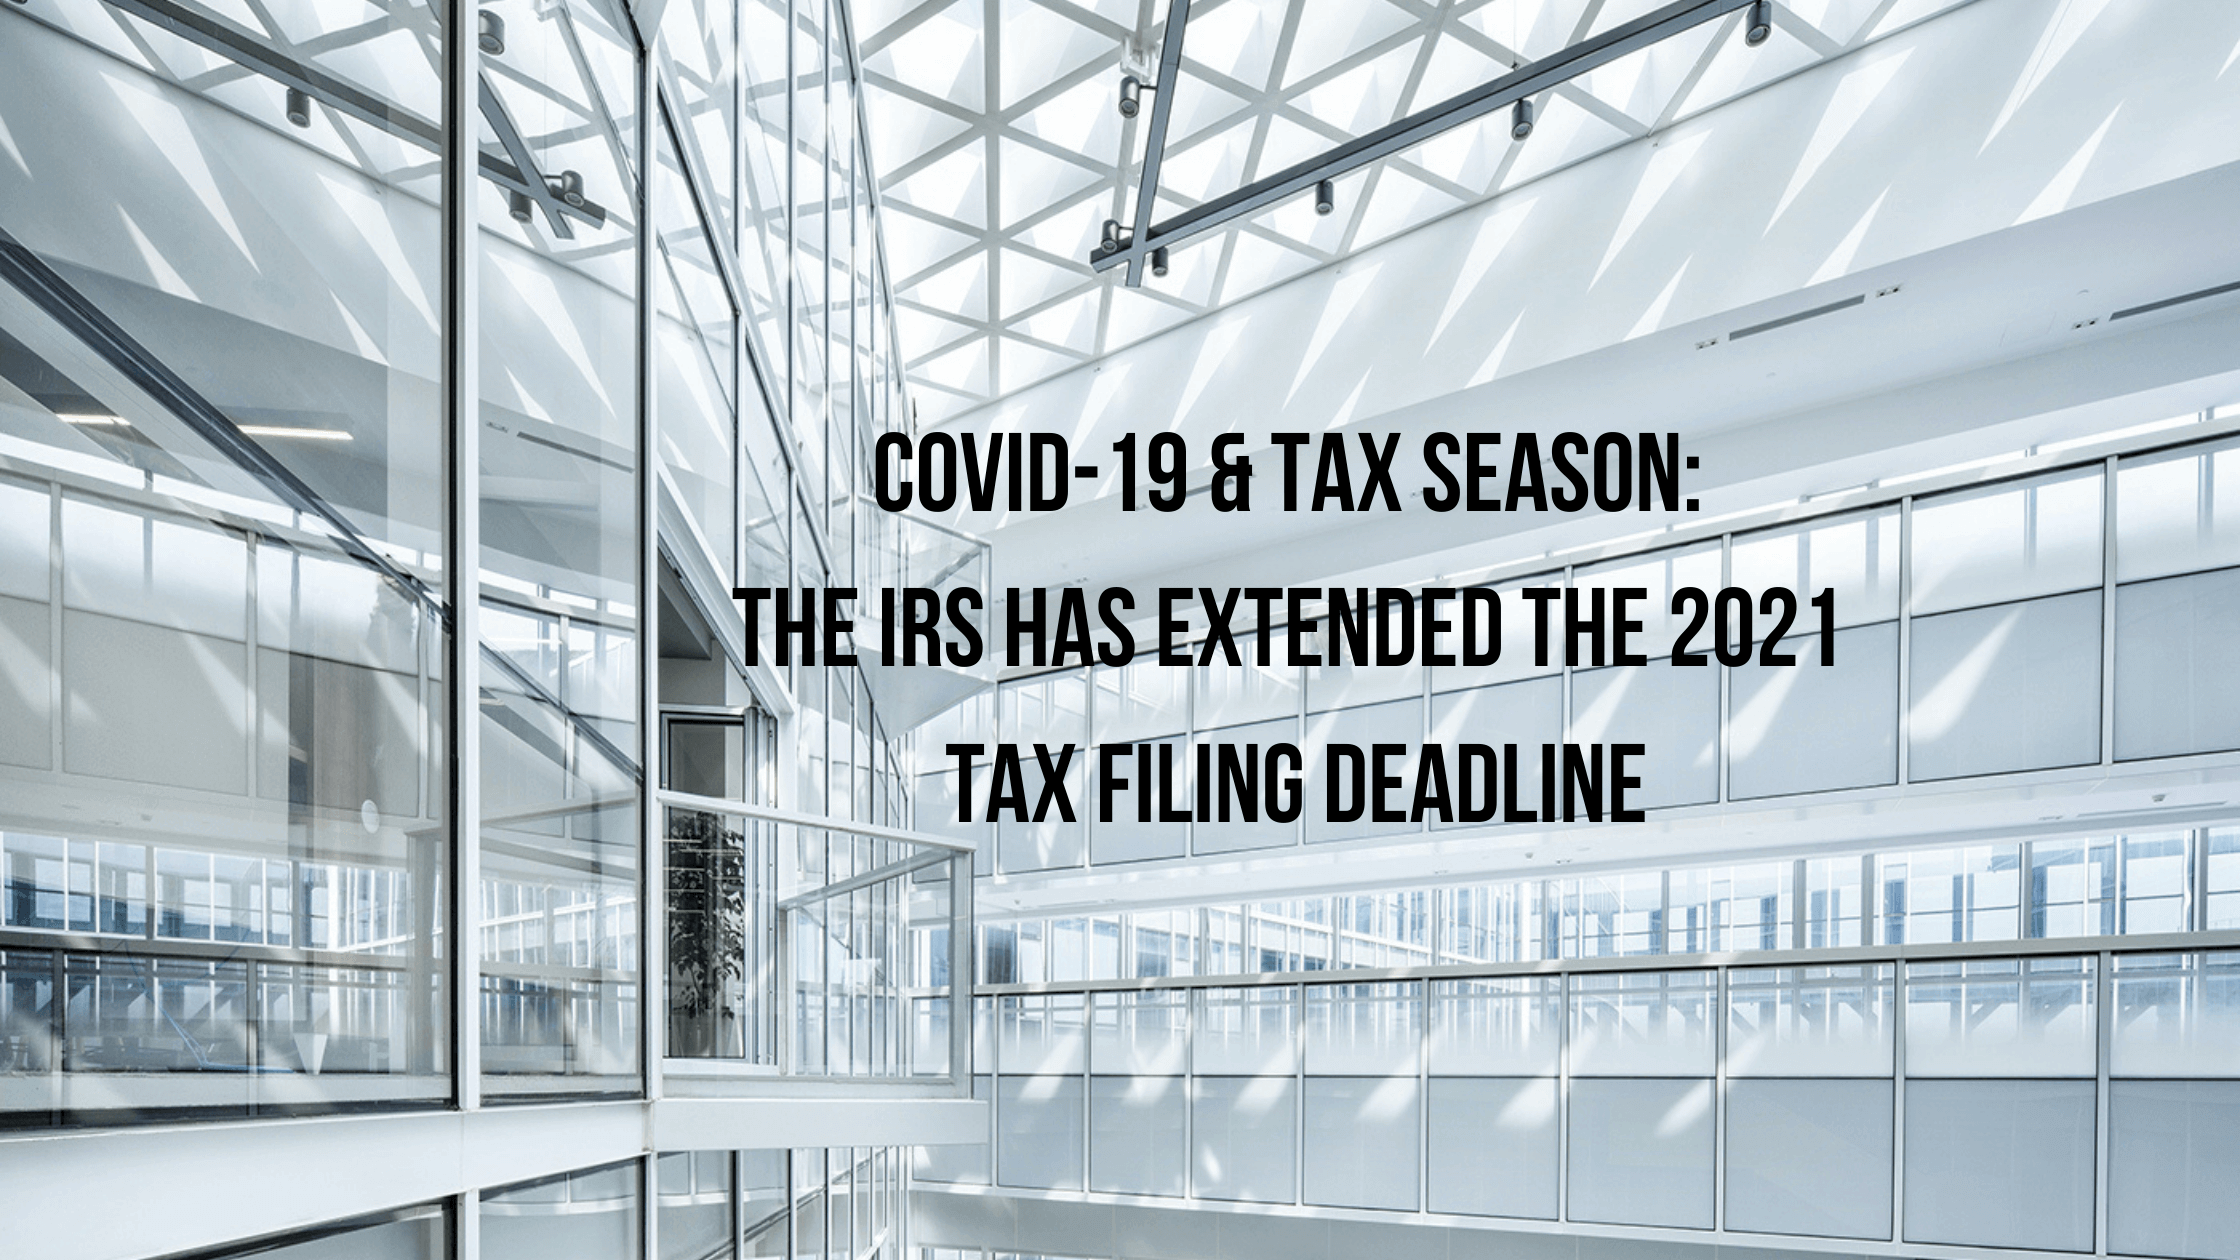 IRS extended tax deadline